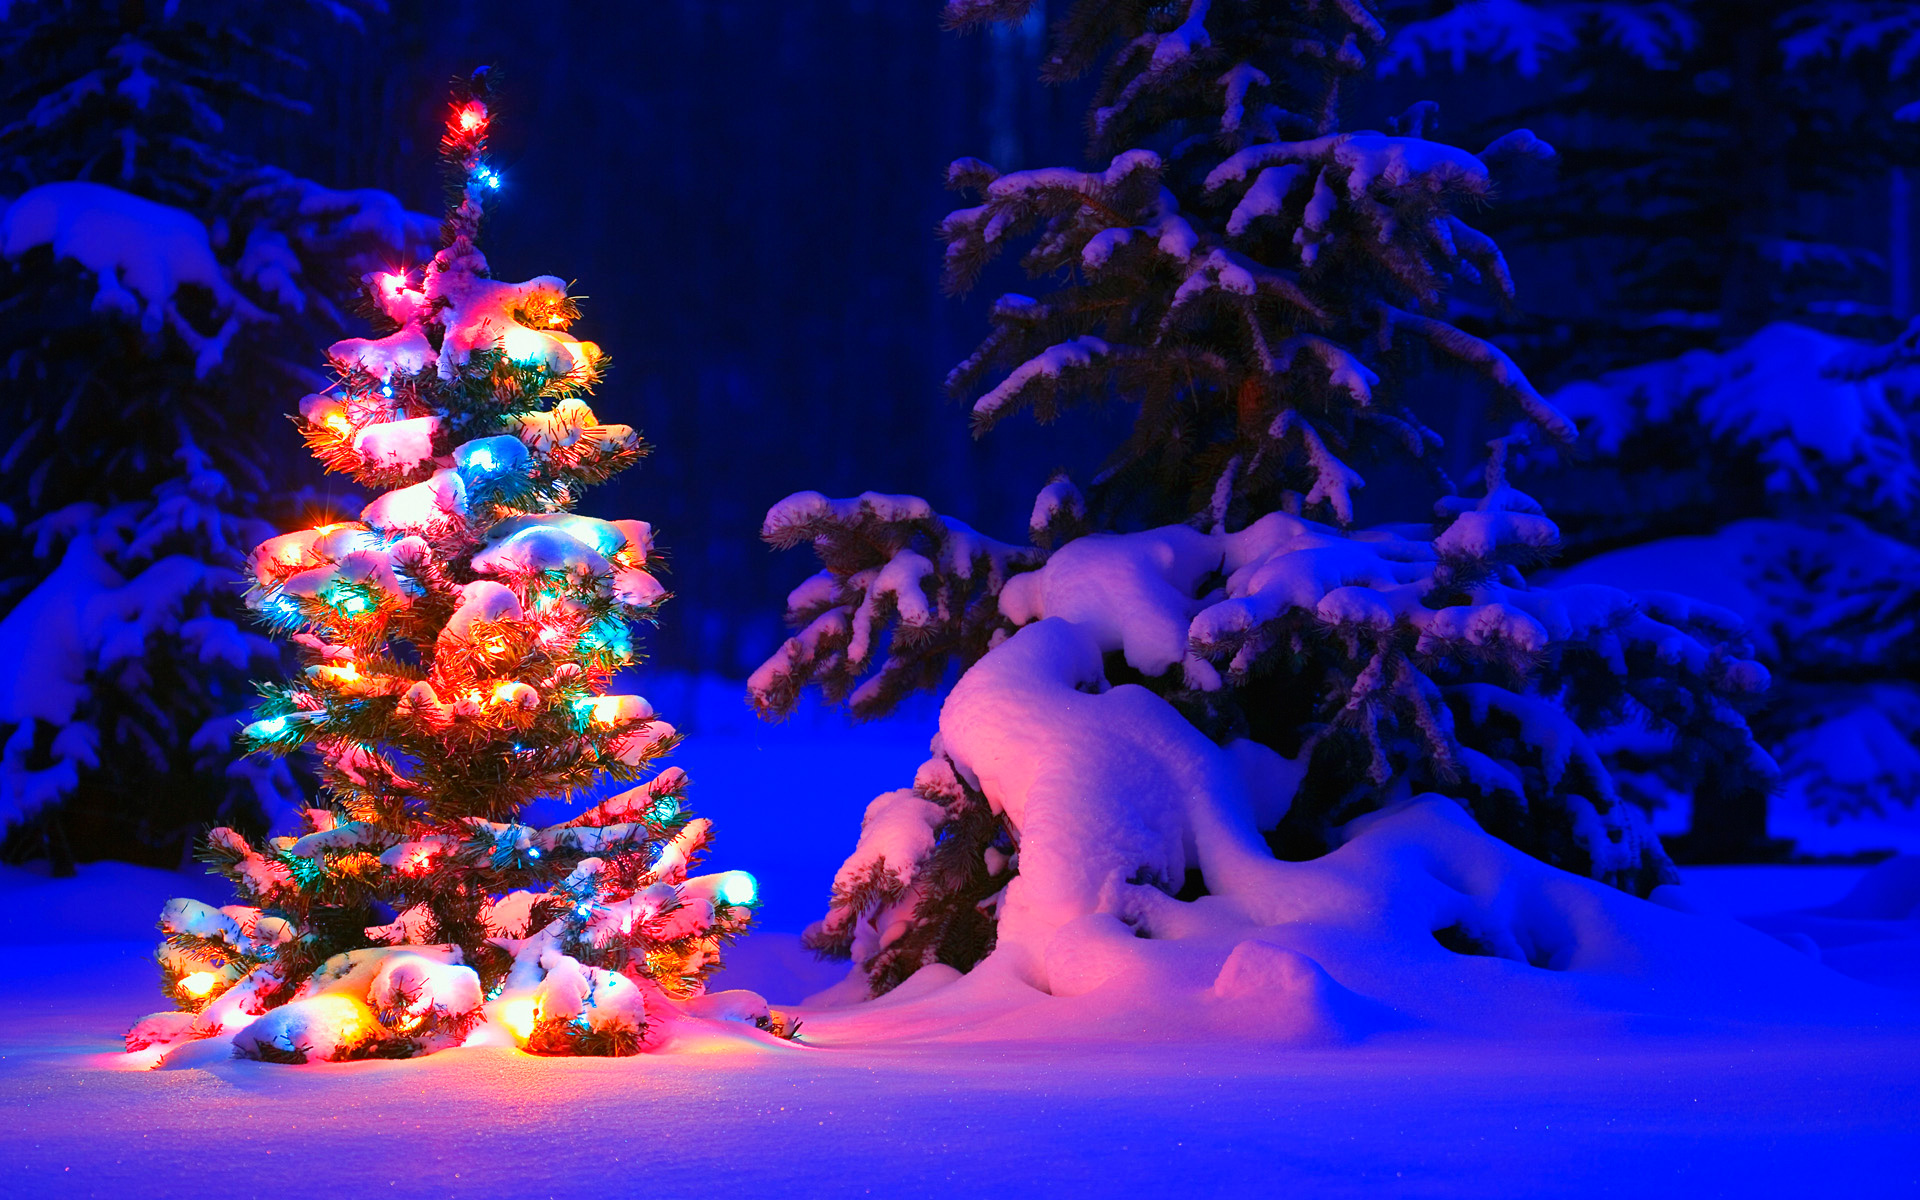 Merry Christmas 2017 HD Wallpapers